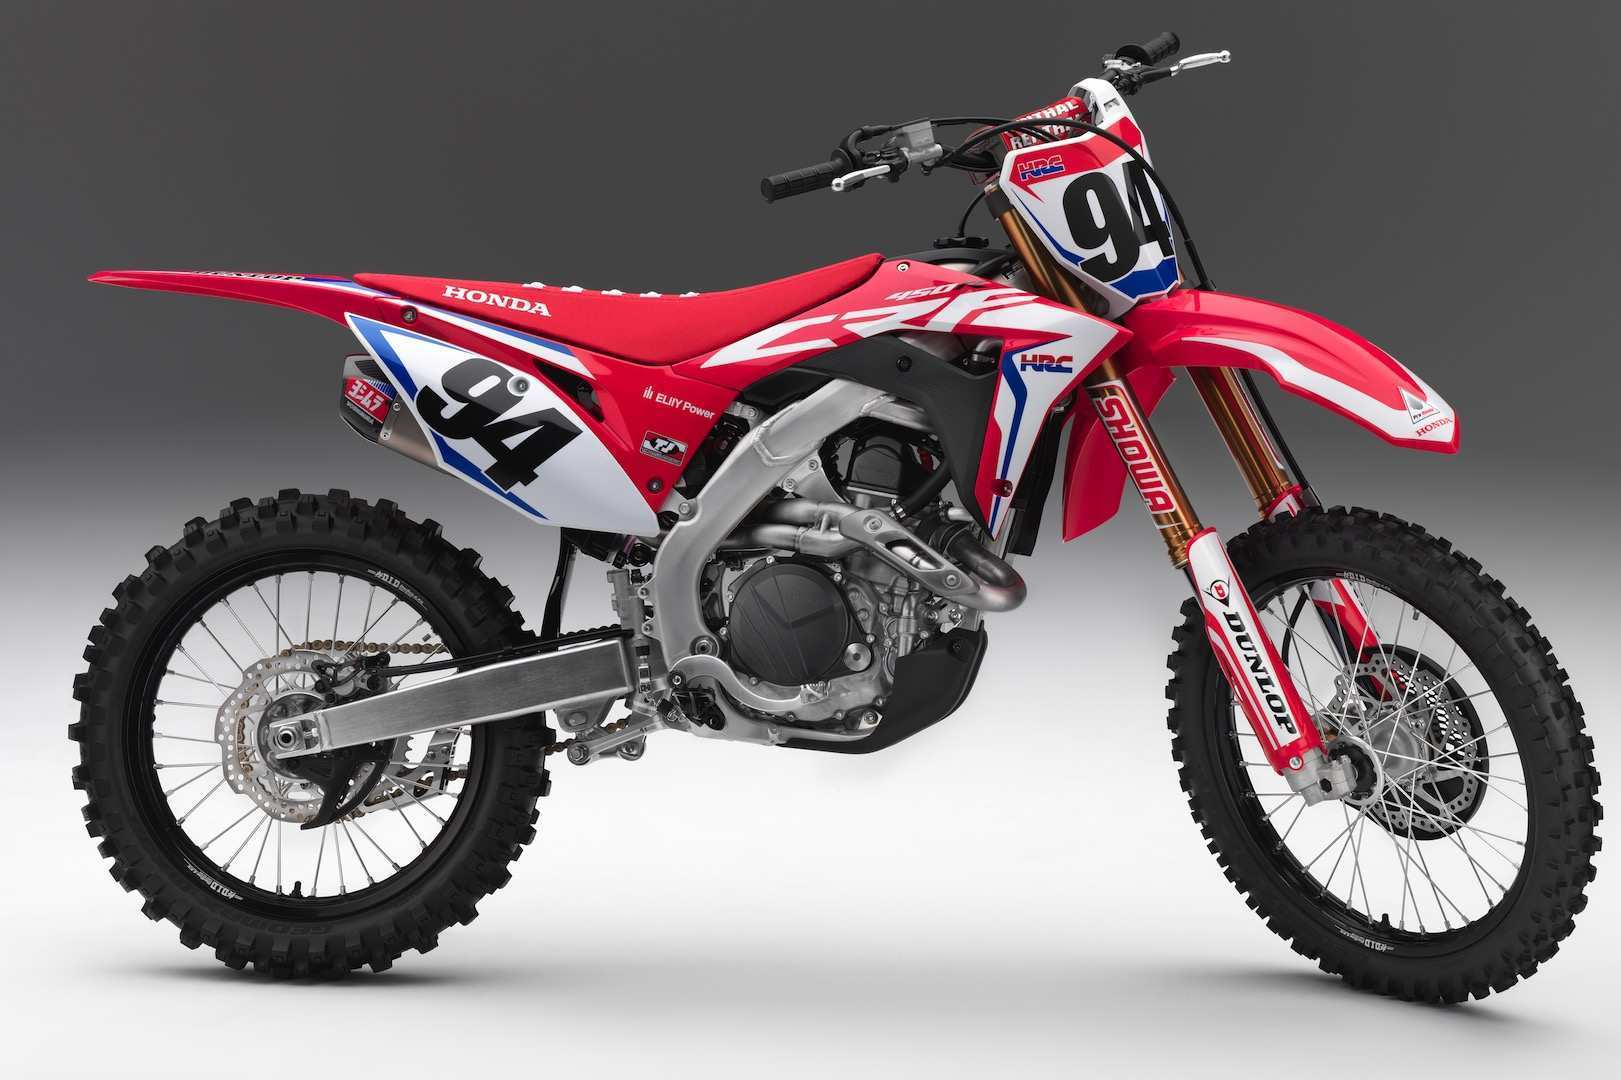 97 Concept of Honda Xr 2019 Images with Honda Xr 2019